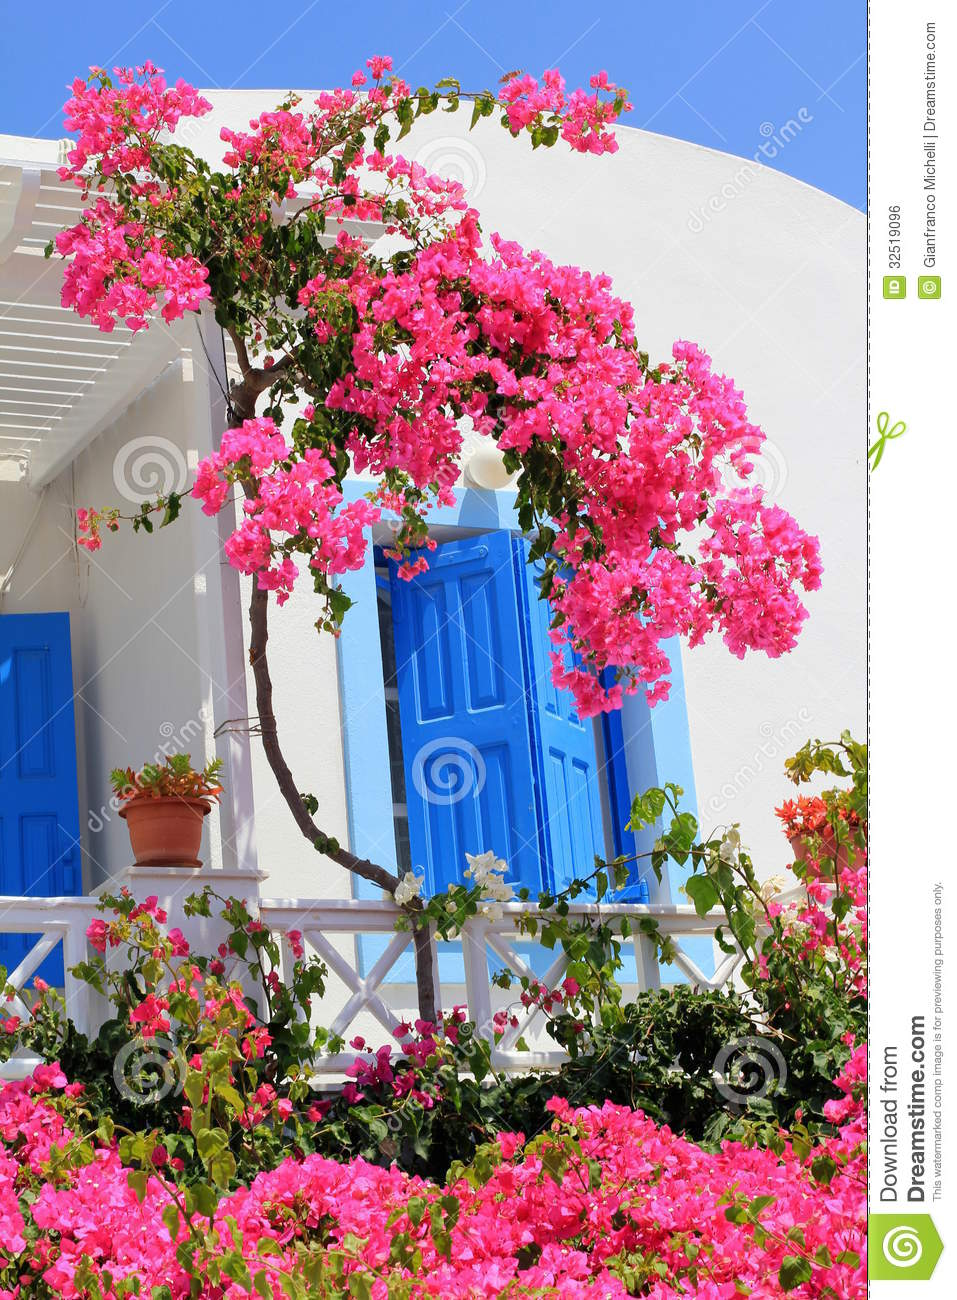 Details Amenagements exterieurs 60 as well Plan Orgon Maison Style Bastide Sh2529 798 moreover French Eclectic also Maison Provencale in addition Royalty Free Stock Image Oia Typical House Santorini Island Detail White Colorful Flowers Blue Doors Windows Same Blue As Sky Image32519096. on provence house plan